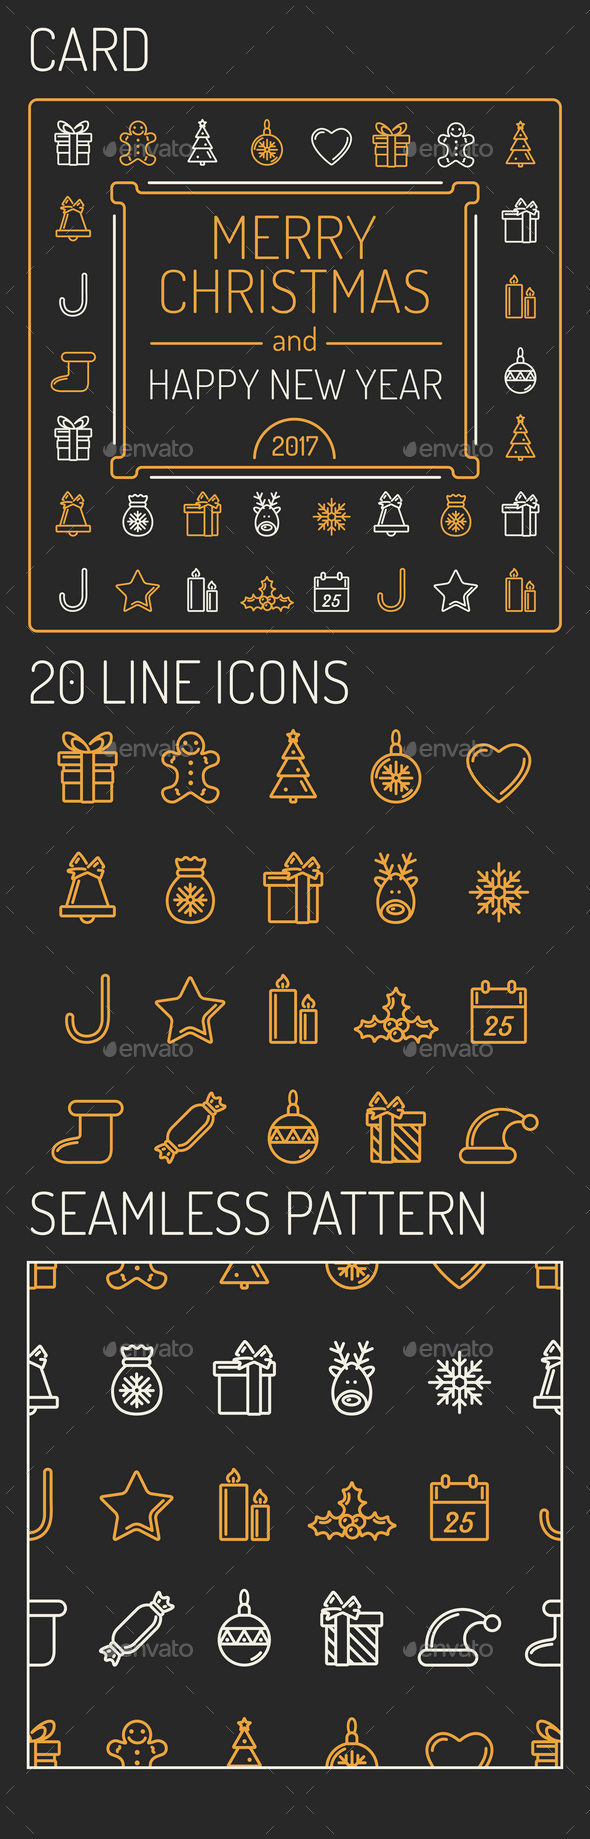 Christmas Card, 20 Icons and Pattern - Seasonal Icons